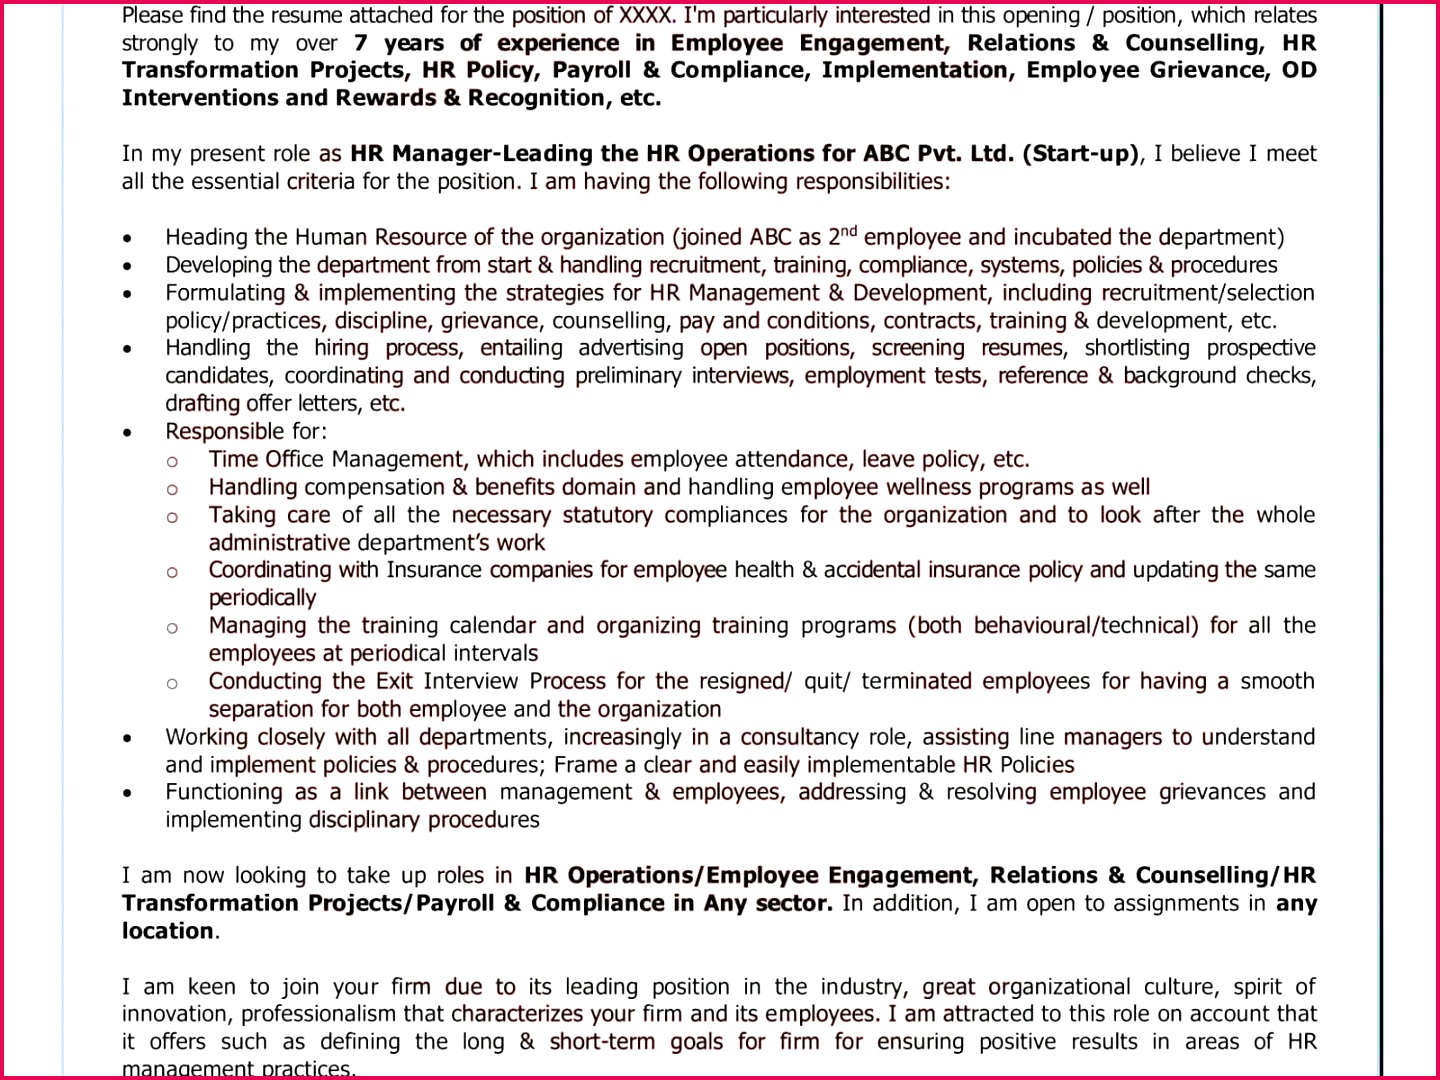 020 template ideas certificate of achievement word sample blank recognition copy lovely appreciation award new audit